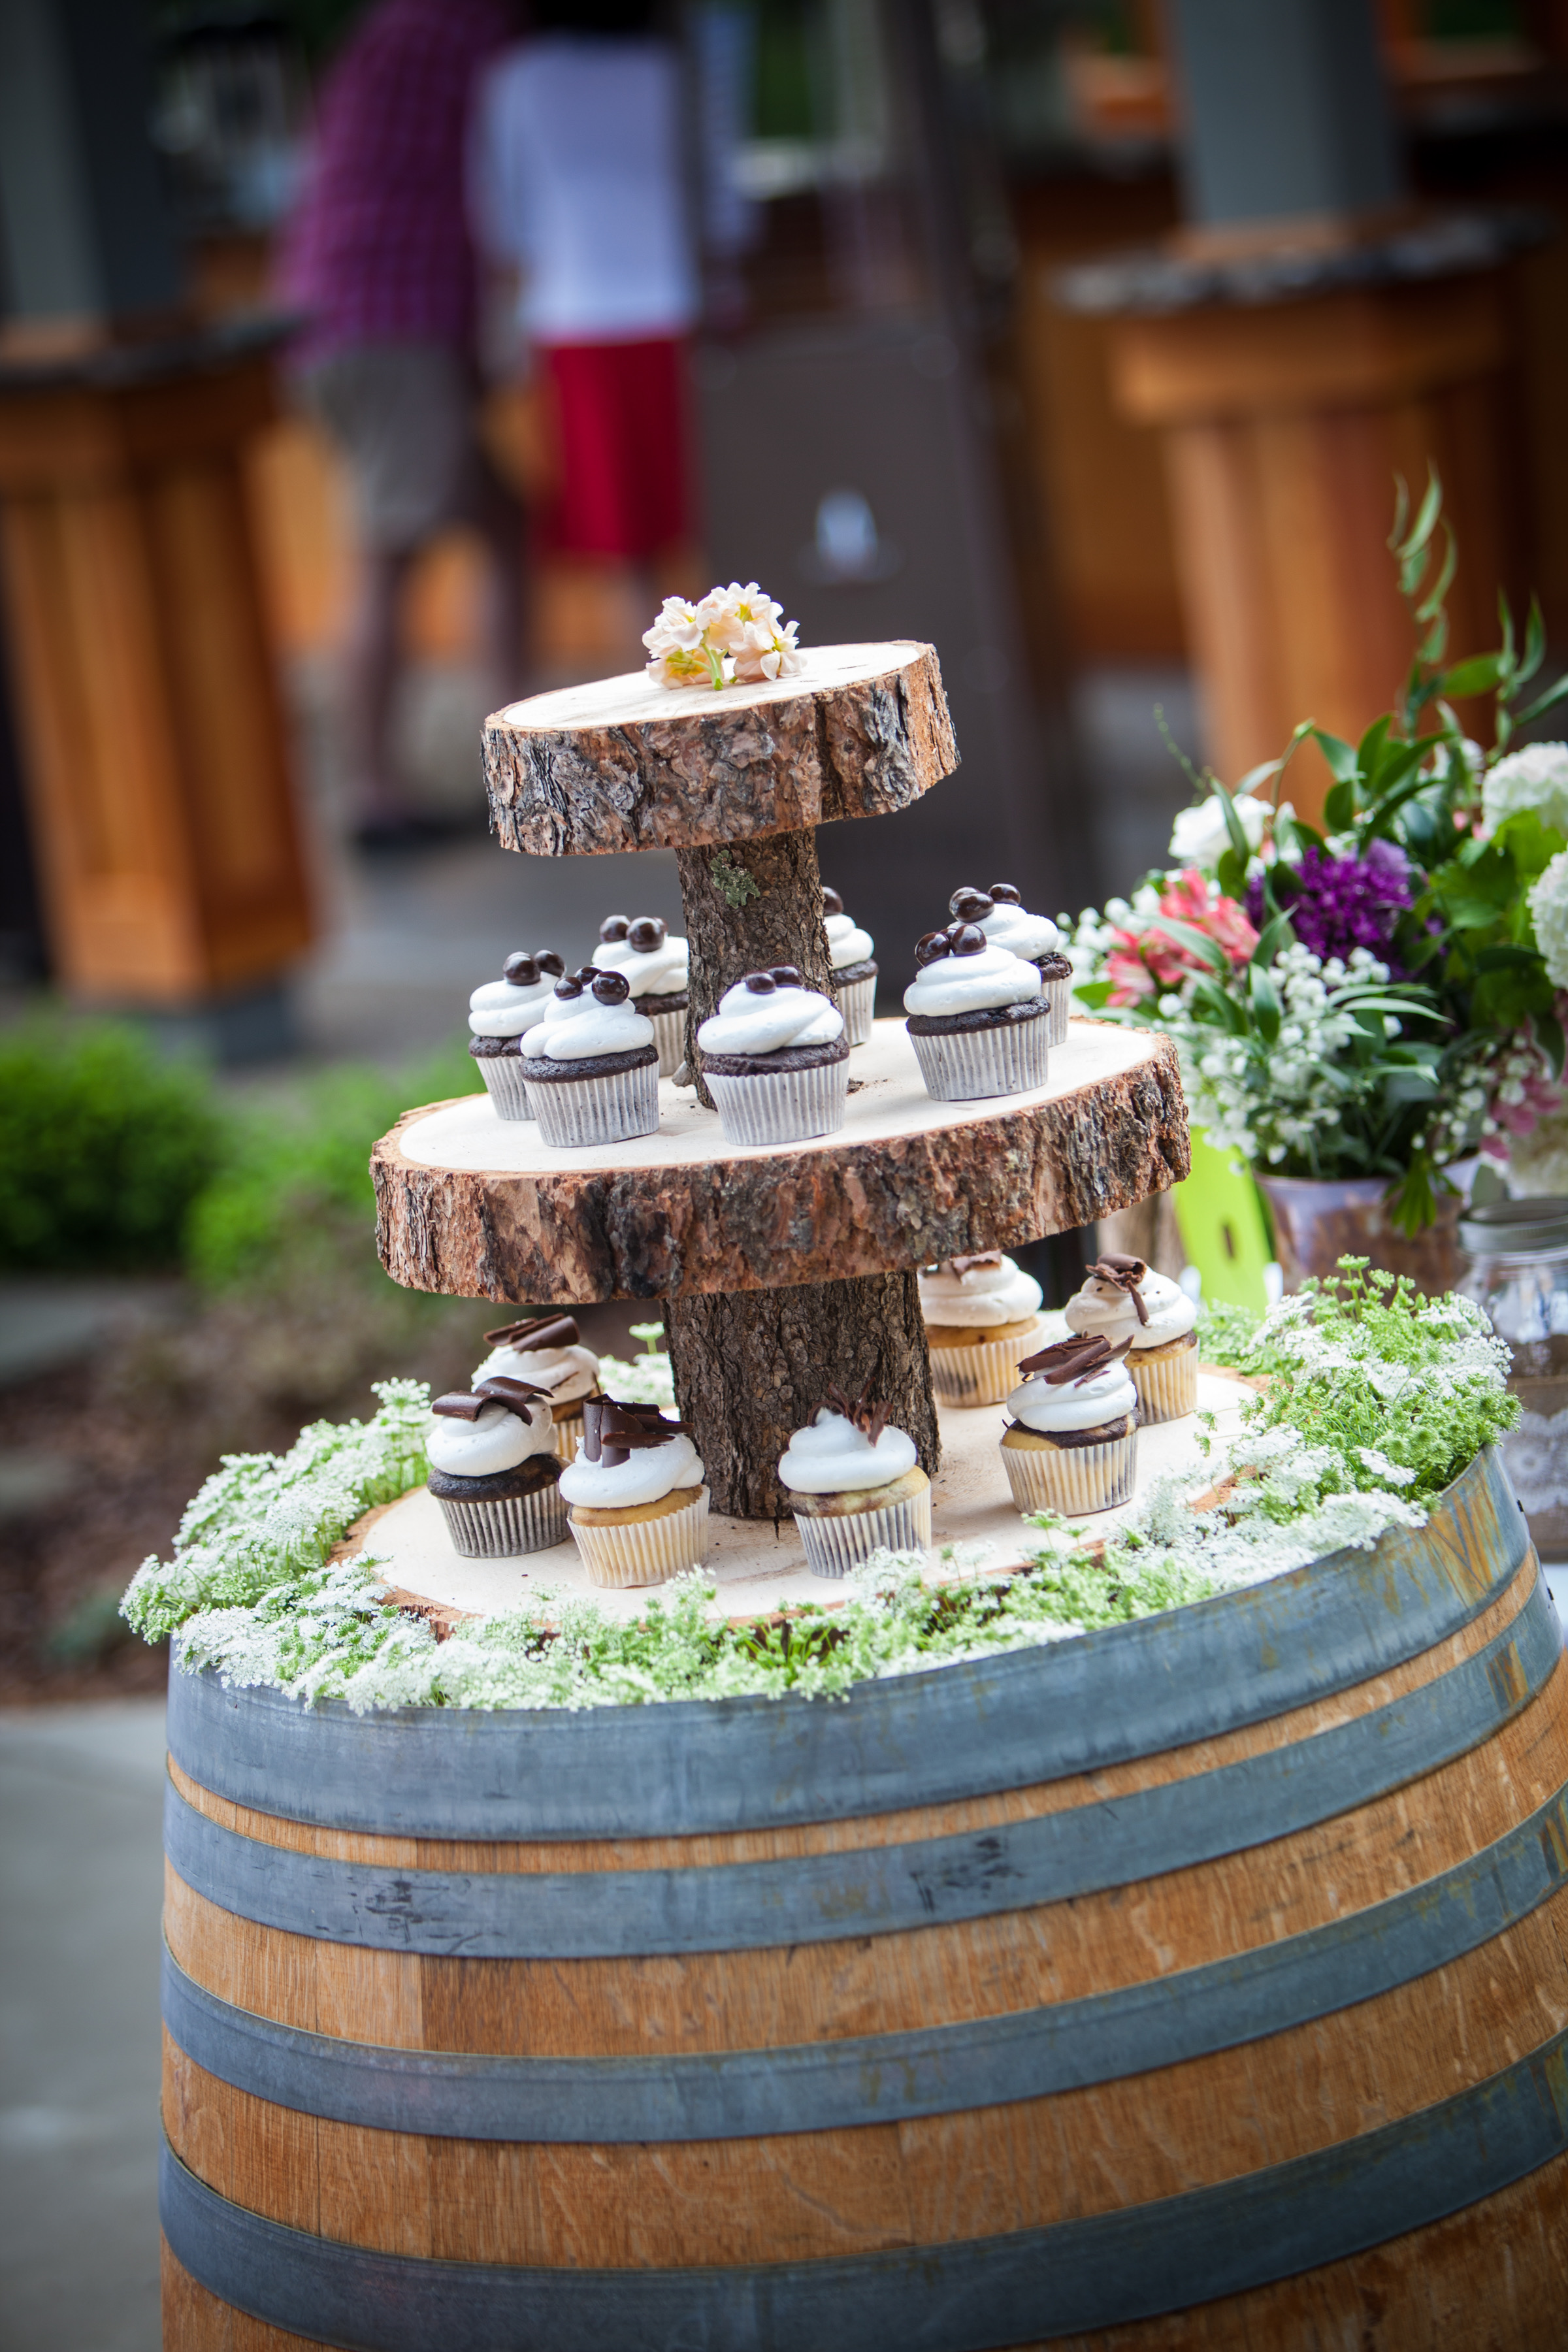 Birch cupcake display, natural beauty